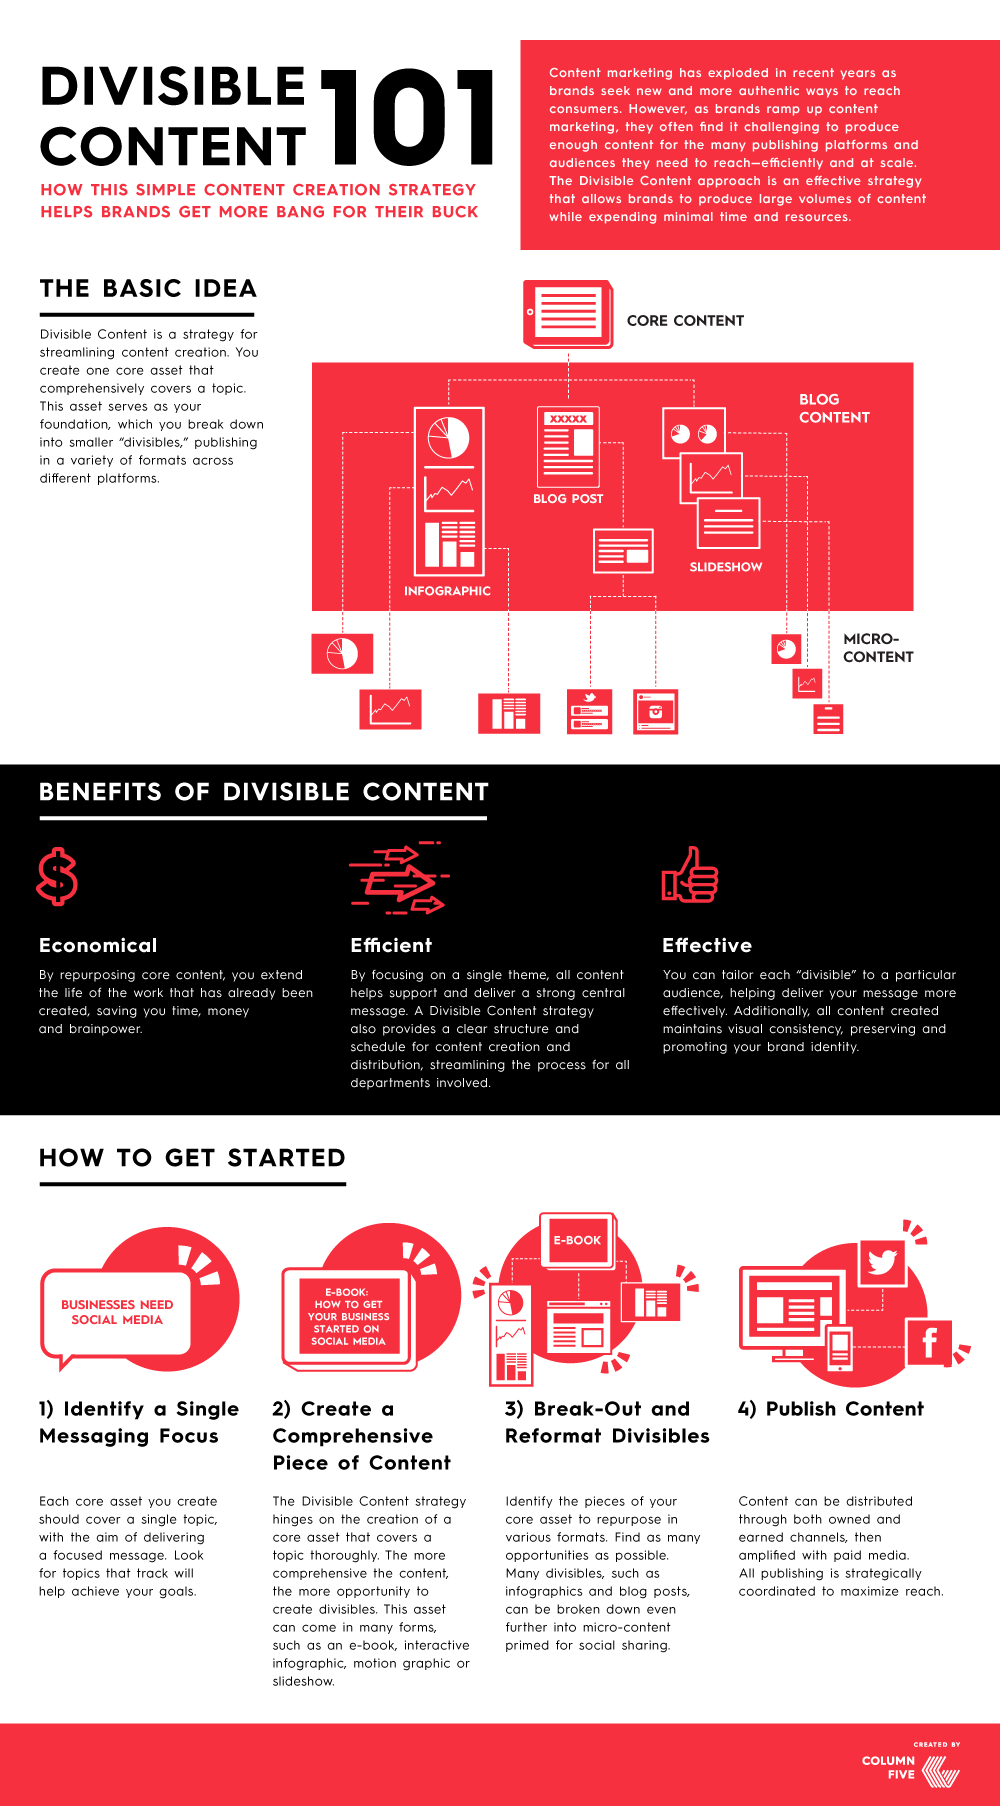 Divisible Content Strategy infographic